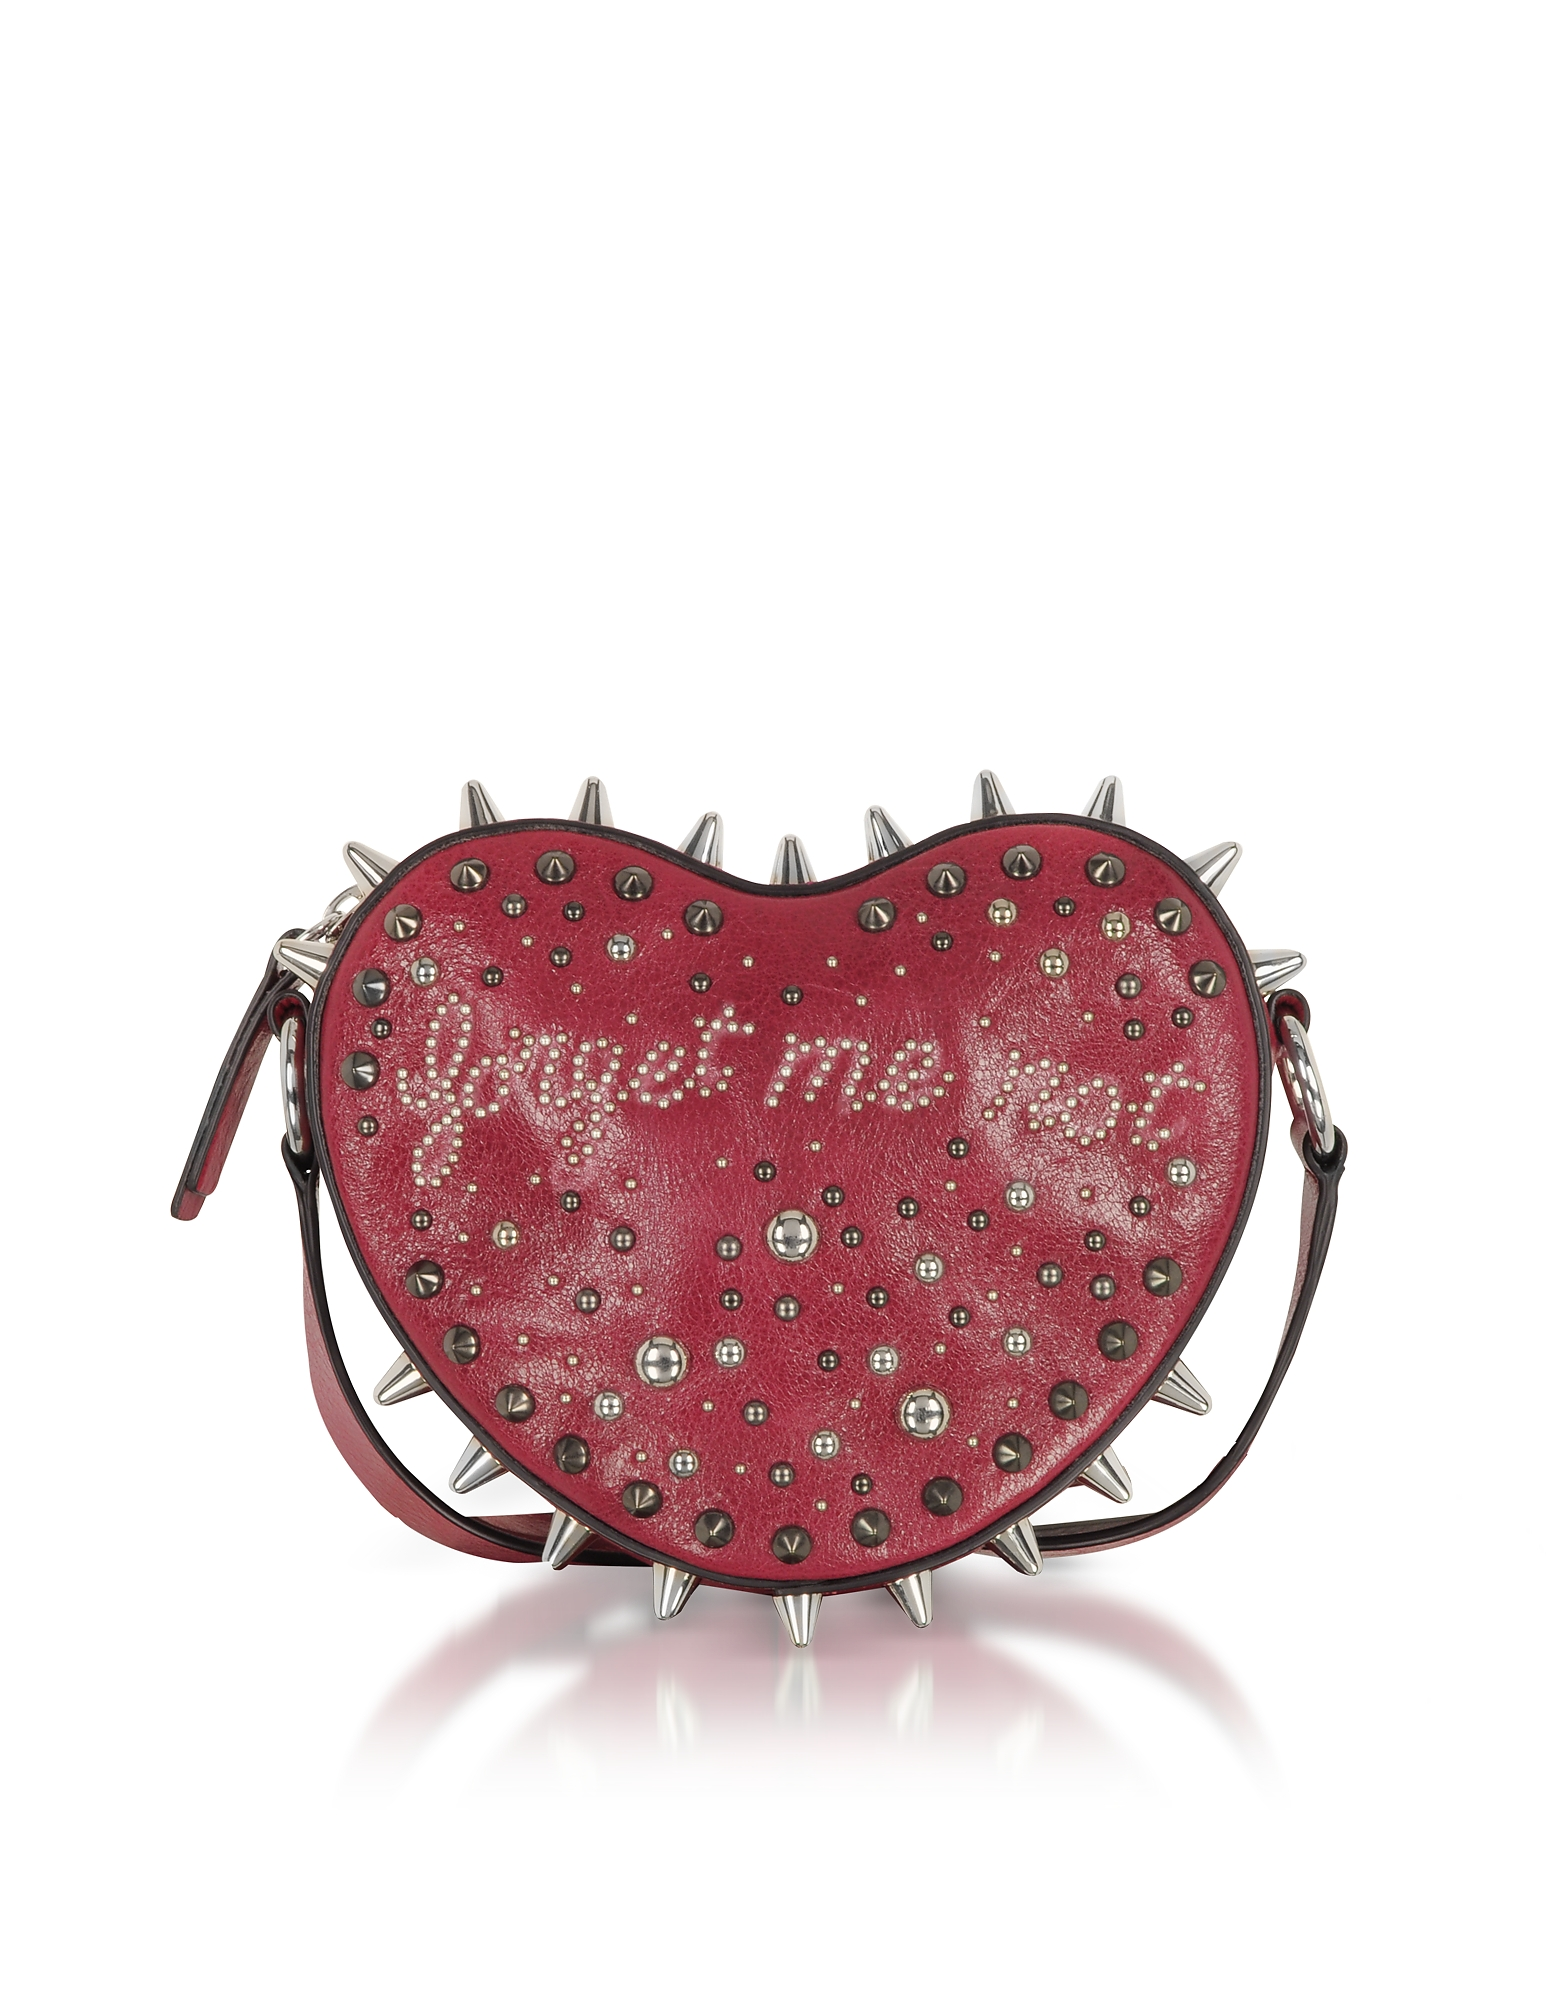 FORGET ME NOT HEART STUDDED CROSSBODY BAG from FORZIERI